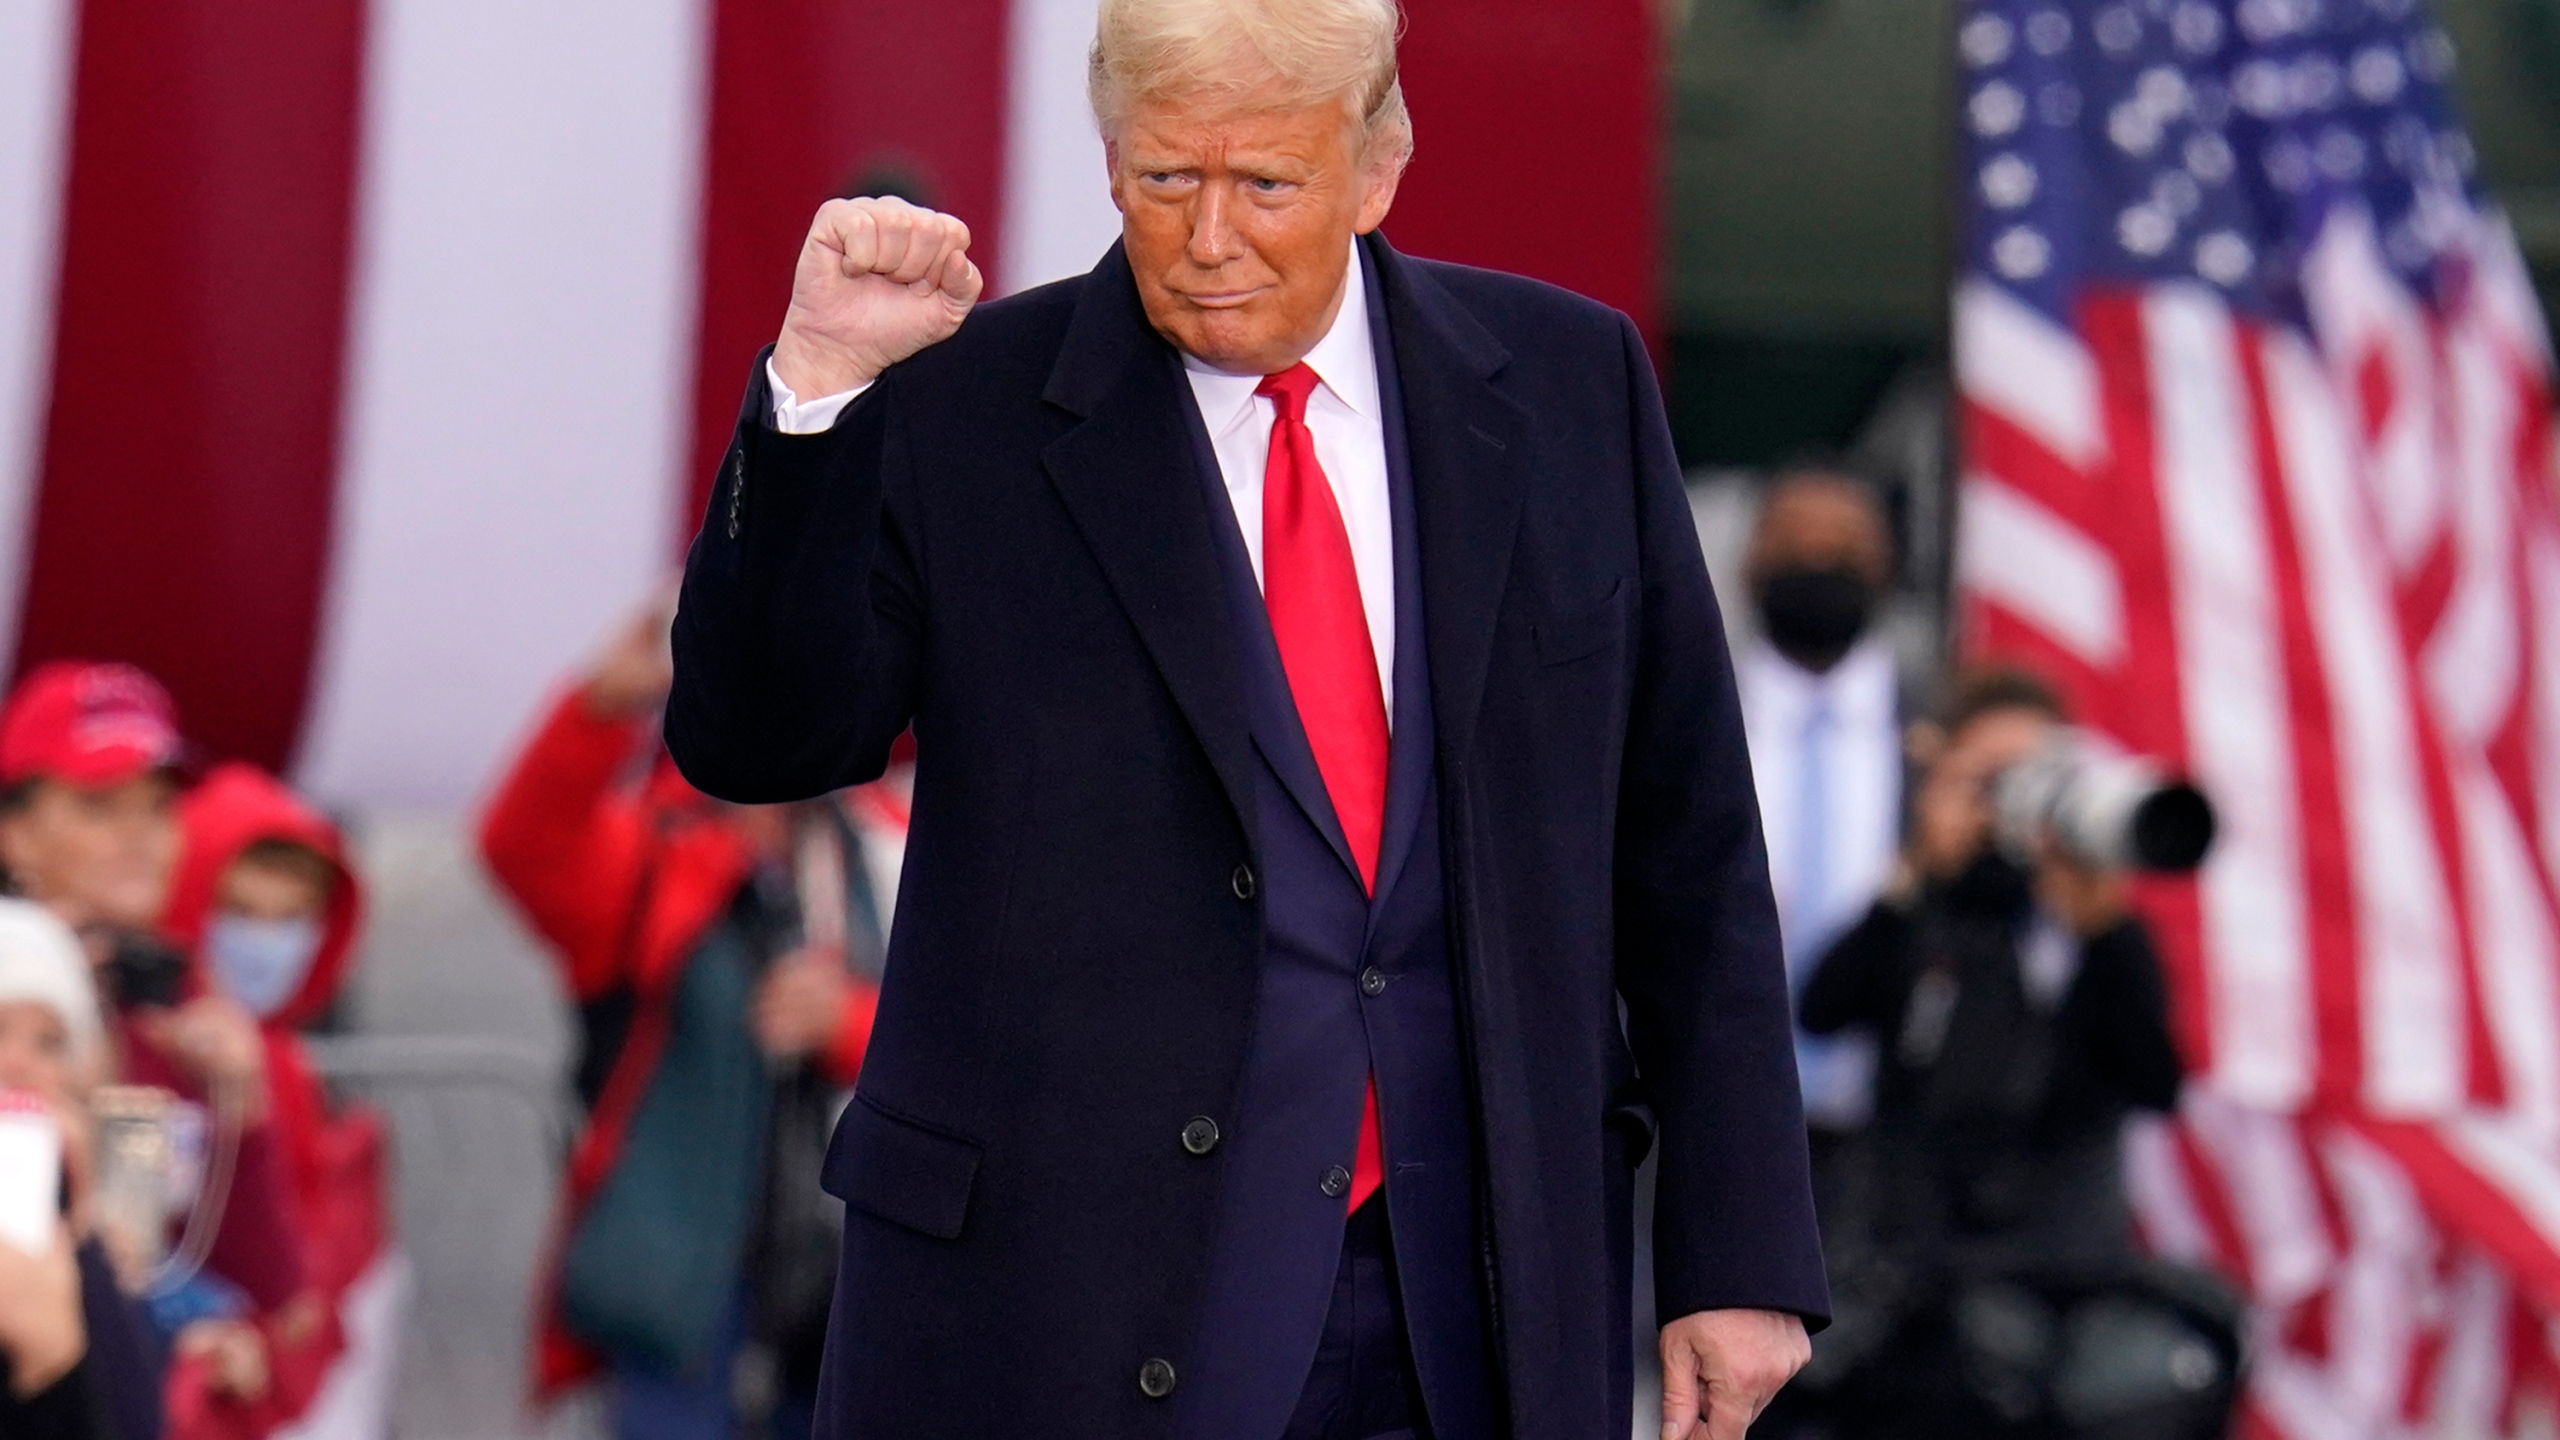 Trump to hold second Michigan rally in a week Friday | WOODTV.com